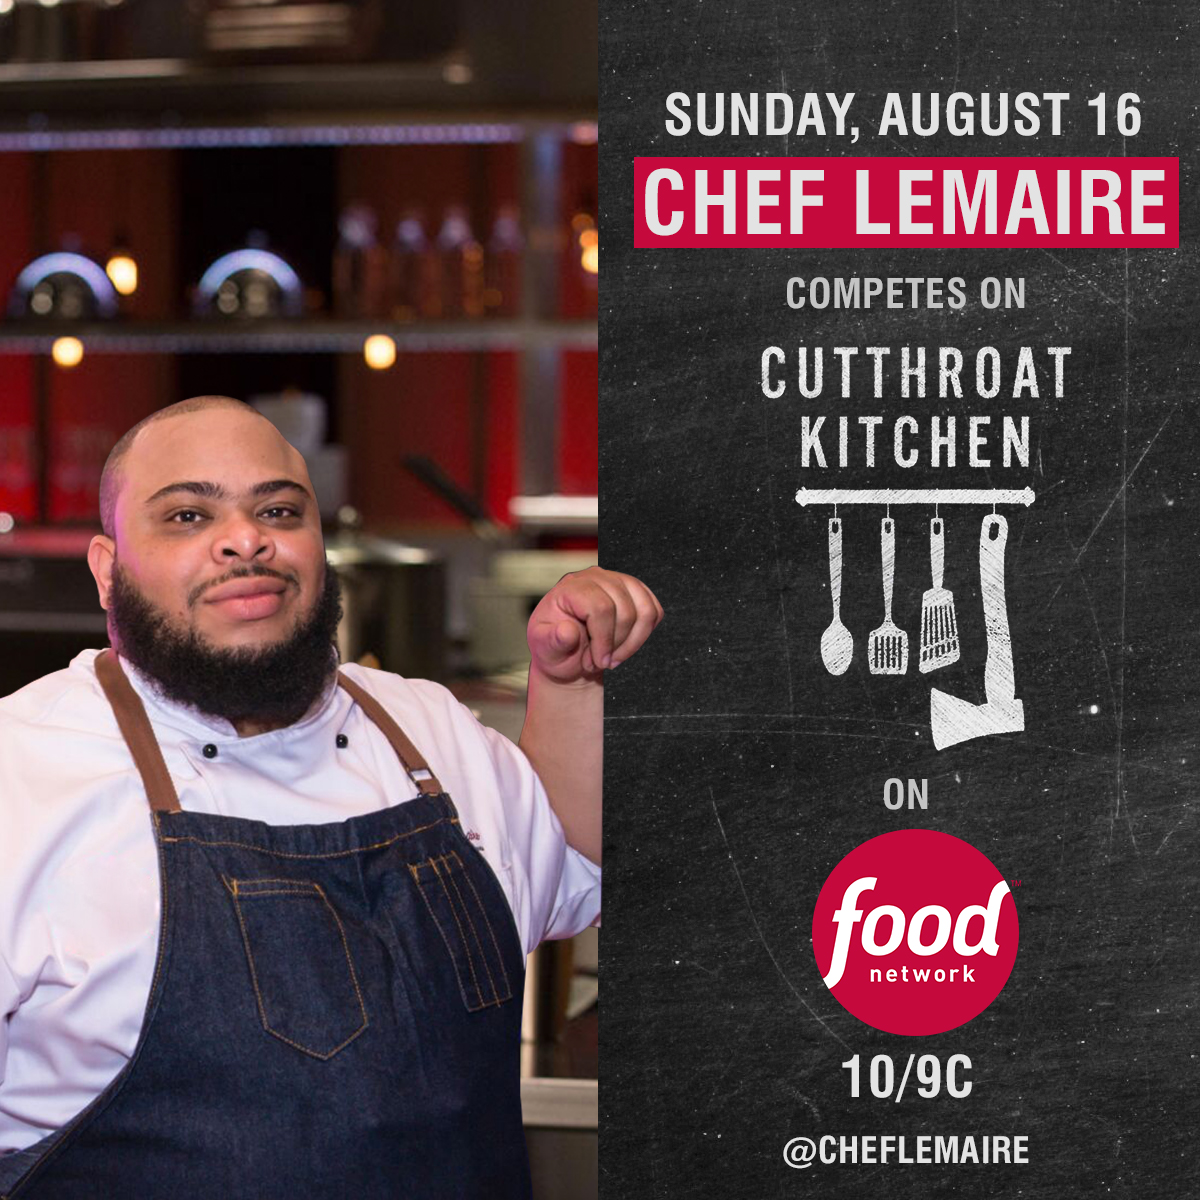 Haitian Chef Lemaire to Compete on Cutthroat Kitchen ...